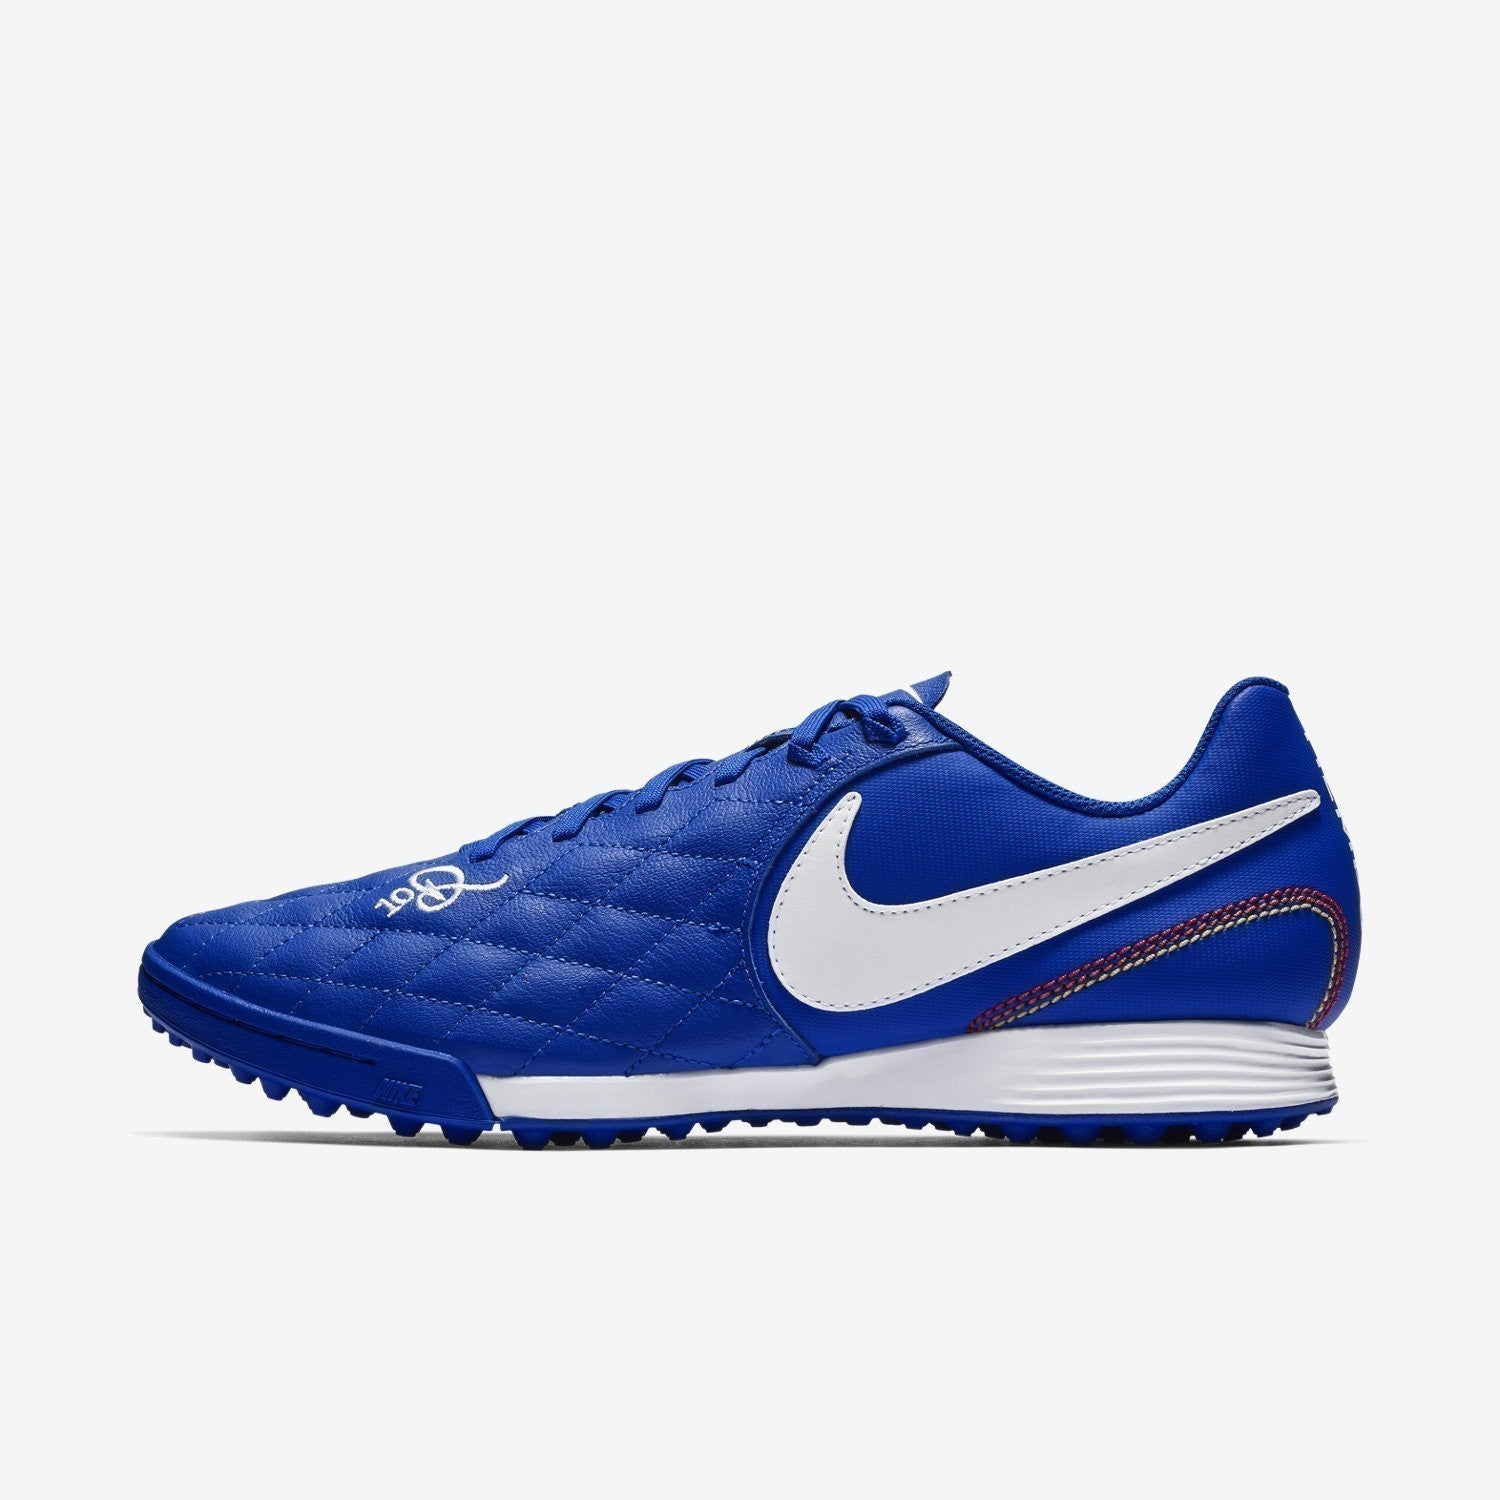 TiempoX Legend 7 Academy 10R Turf Shoes - Game Royal/White